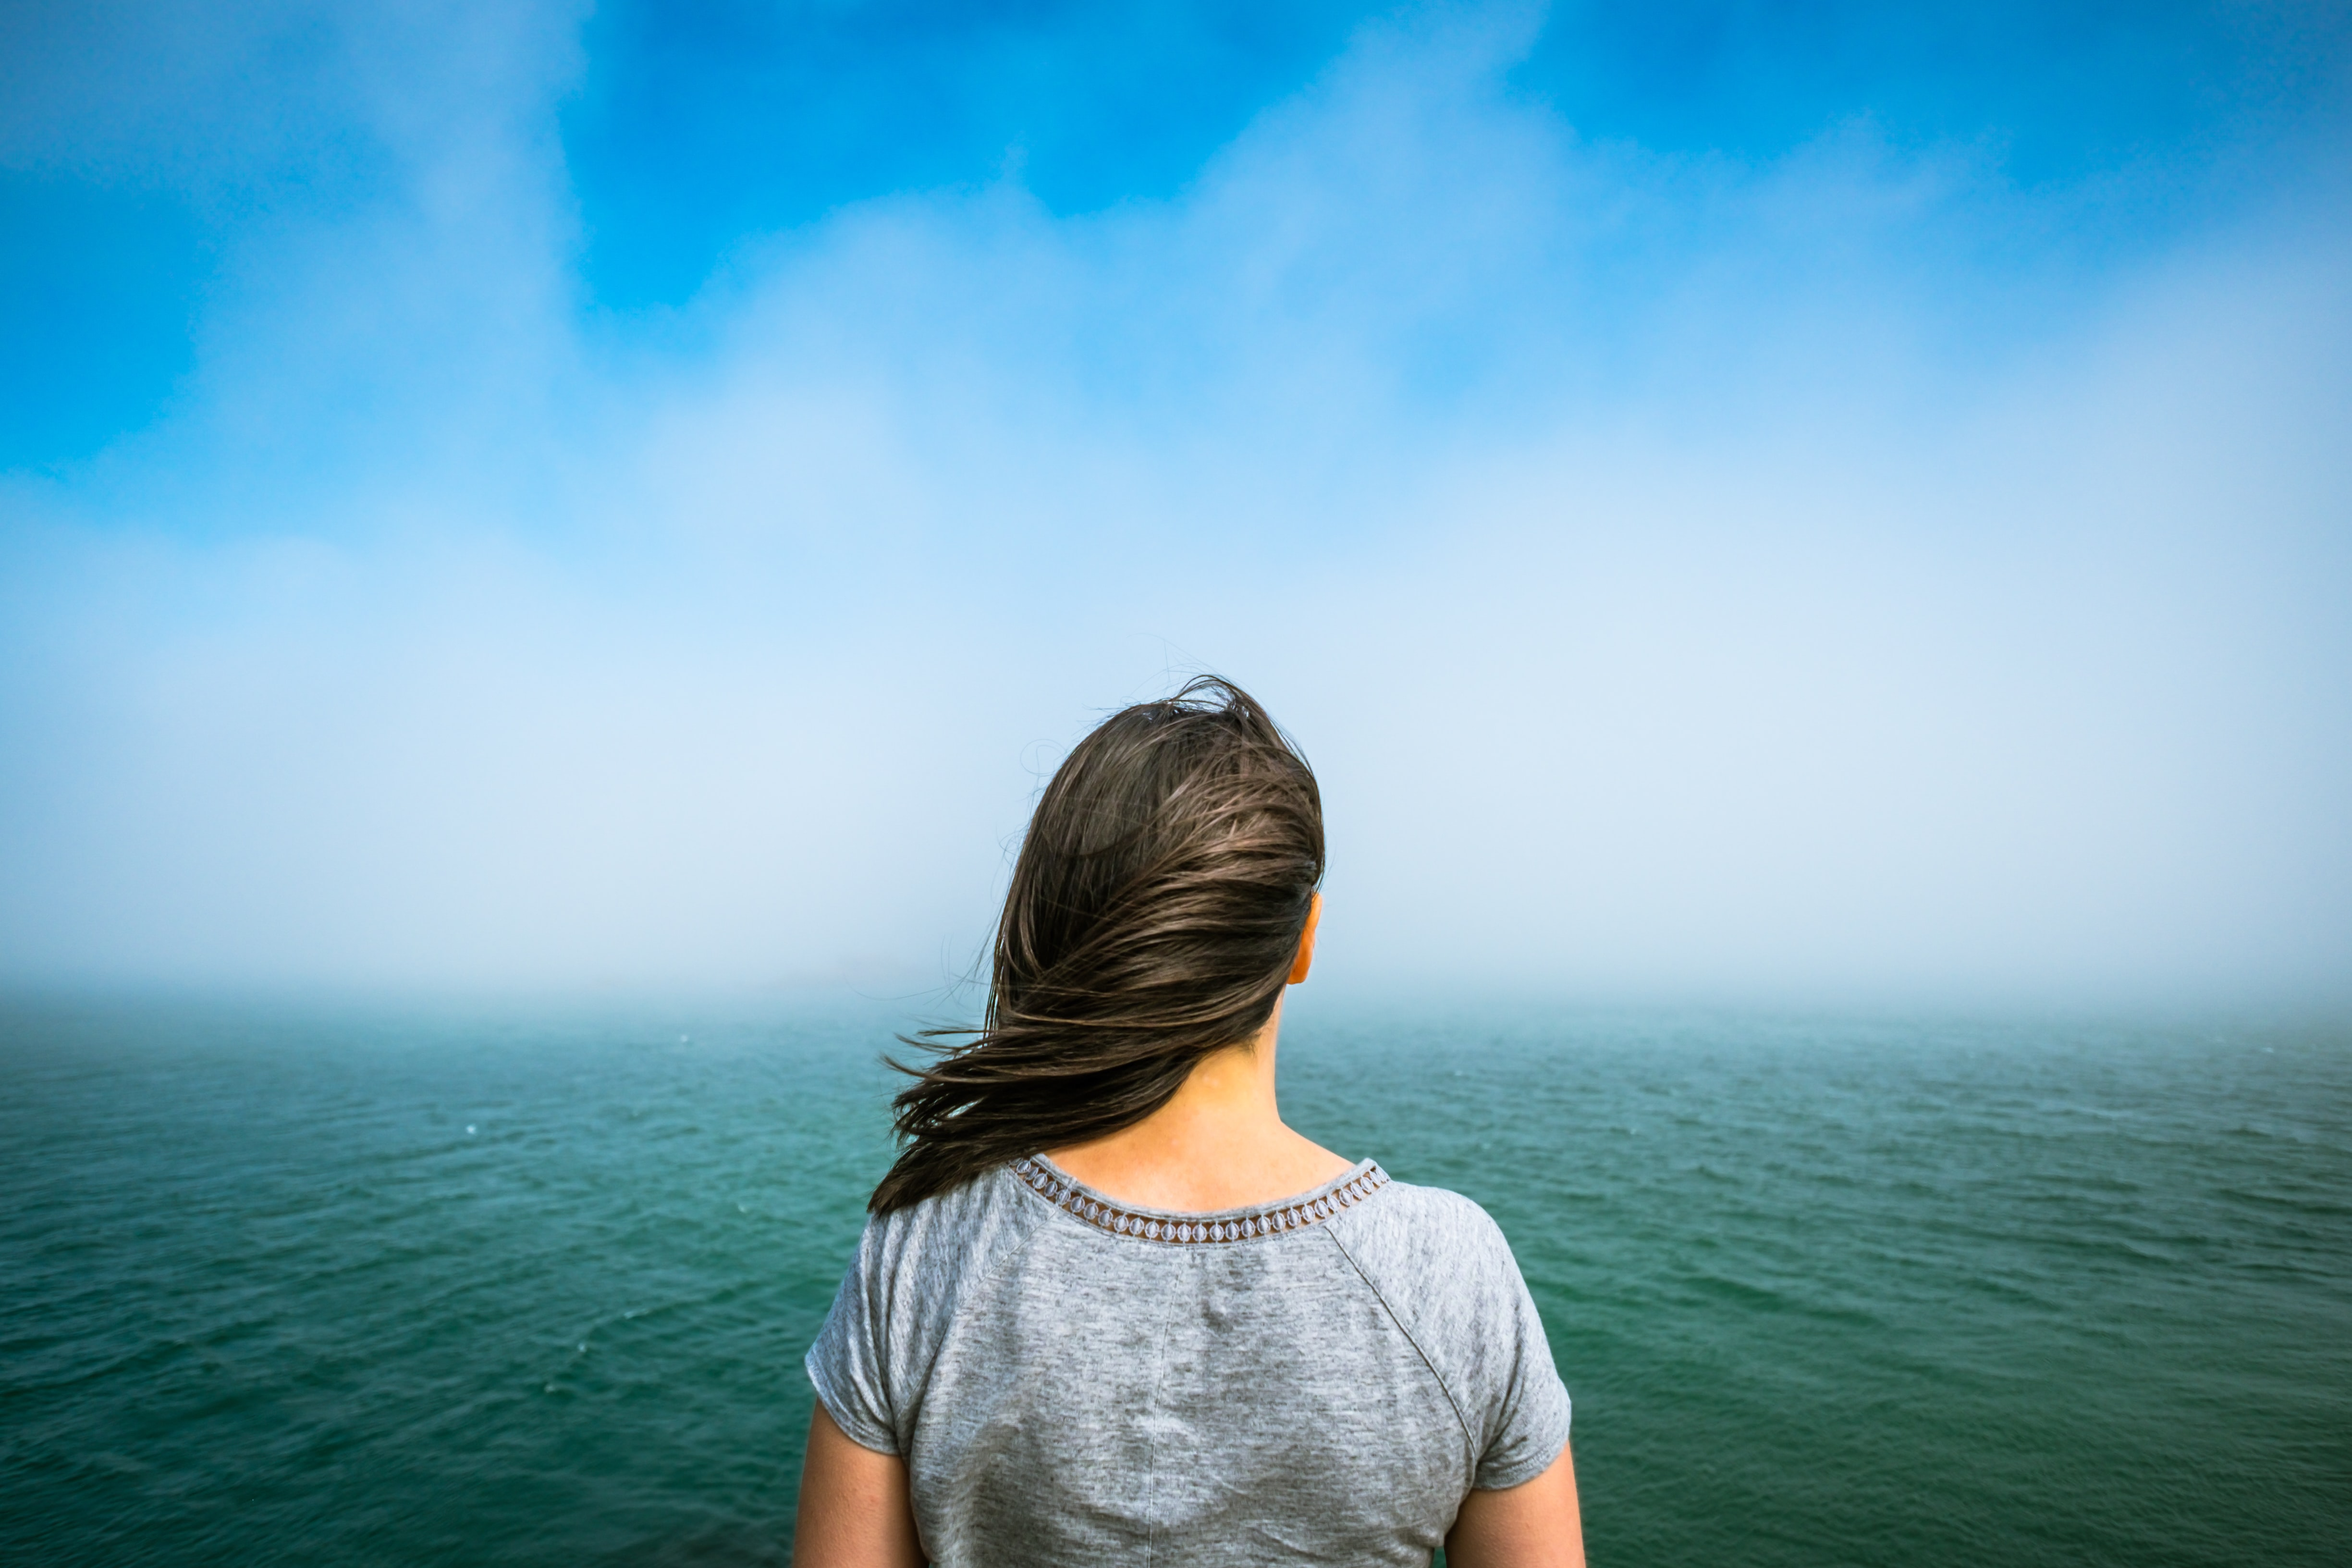 woman looks out at windy ocean view